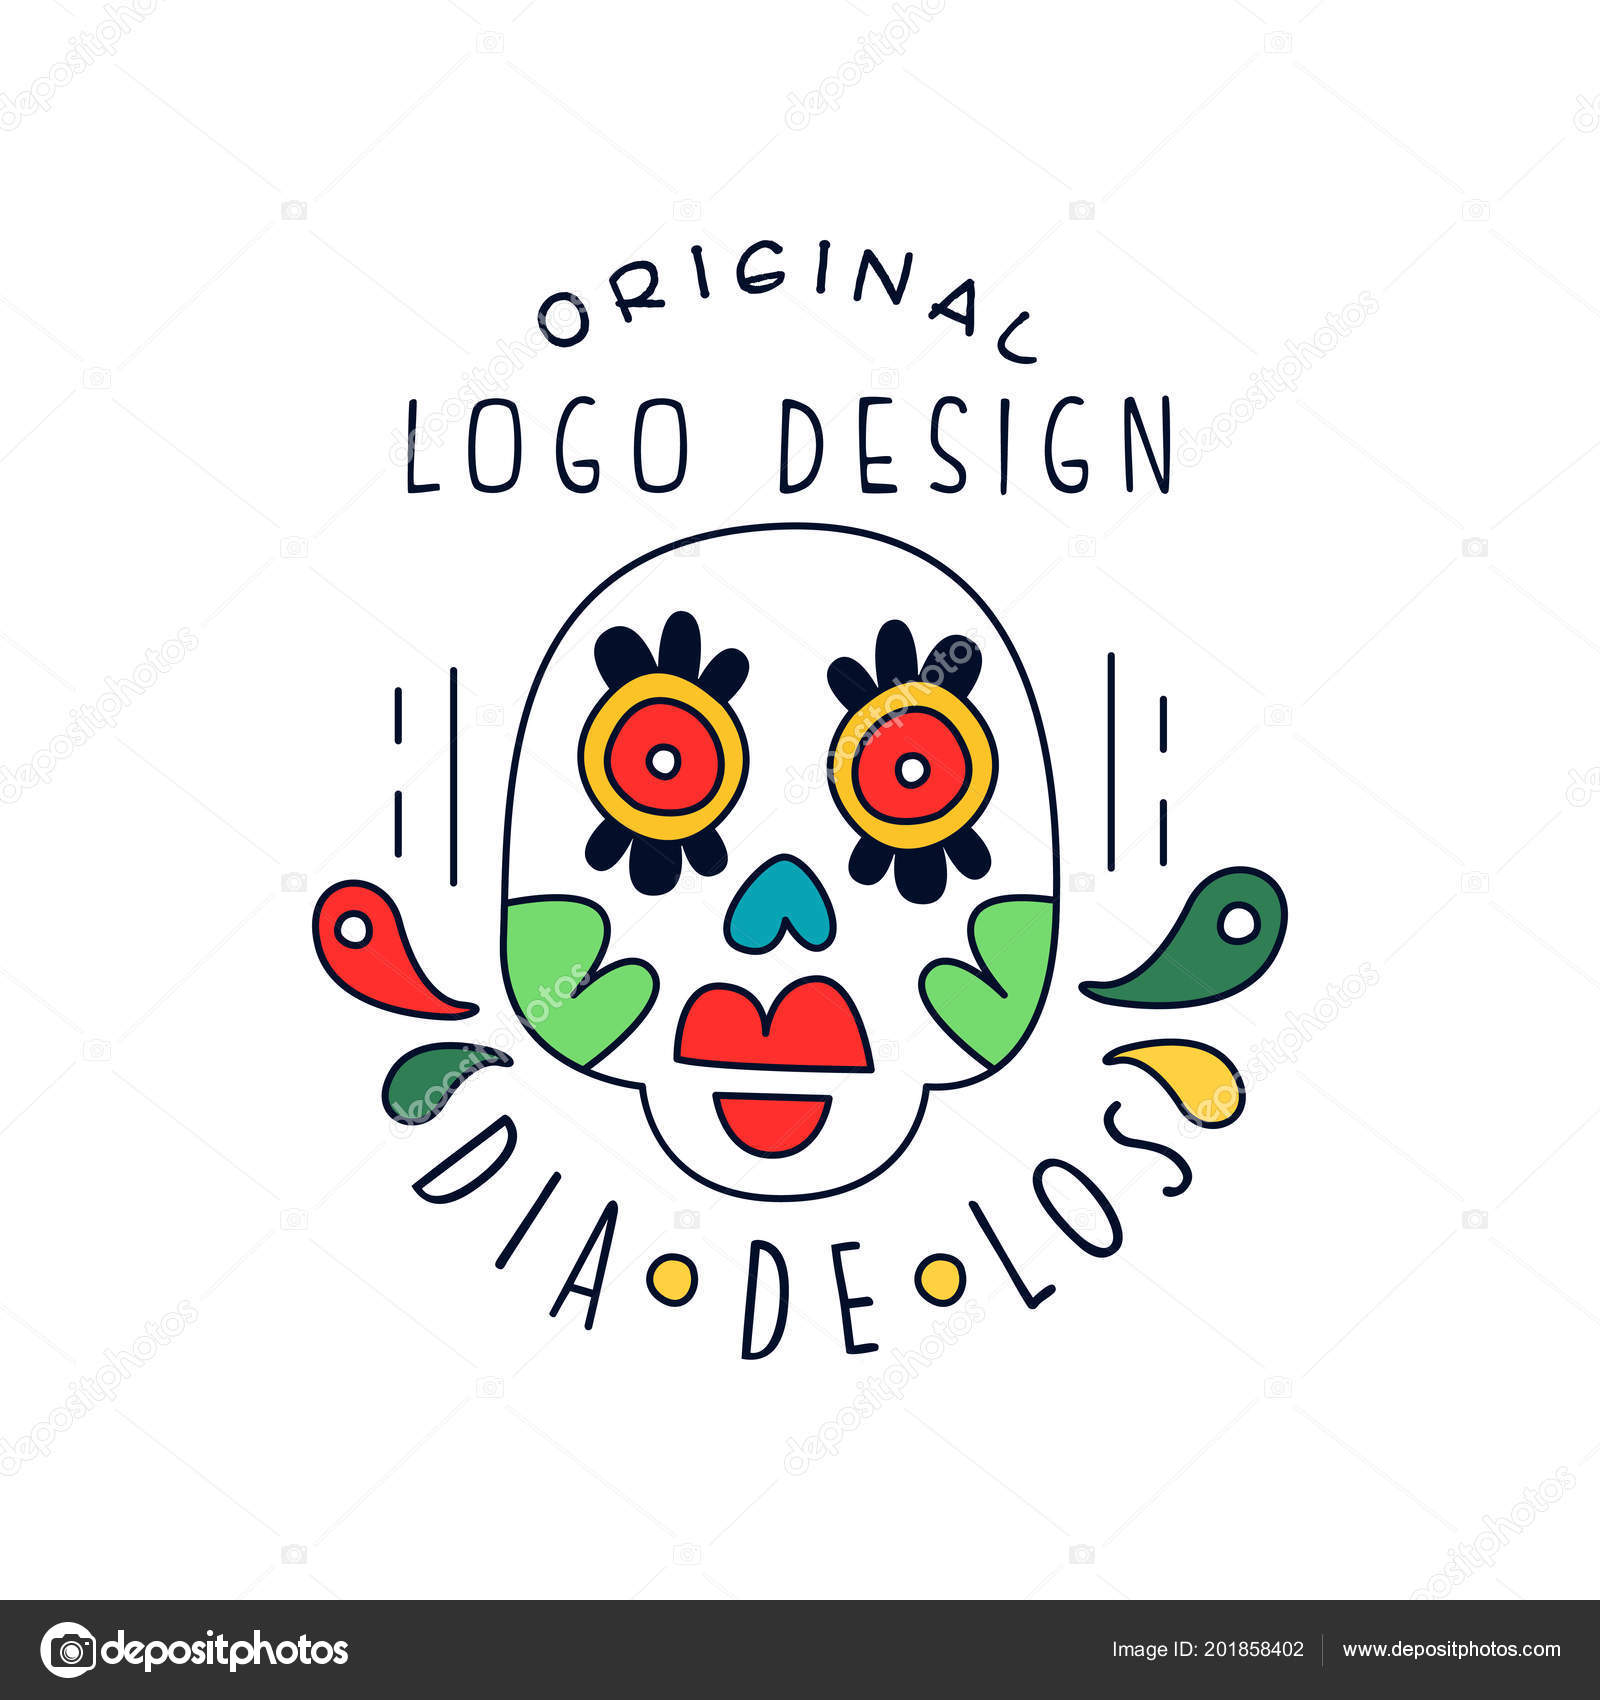 Dia de los original logo design traditional mexican day of the dead dia de los original logo design traditional mexican day of the dead holiday party decoration banner greeting card or invitation hand drawn vector stopboris Image collections